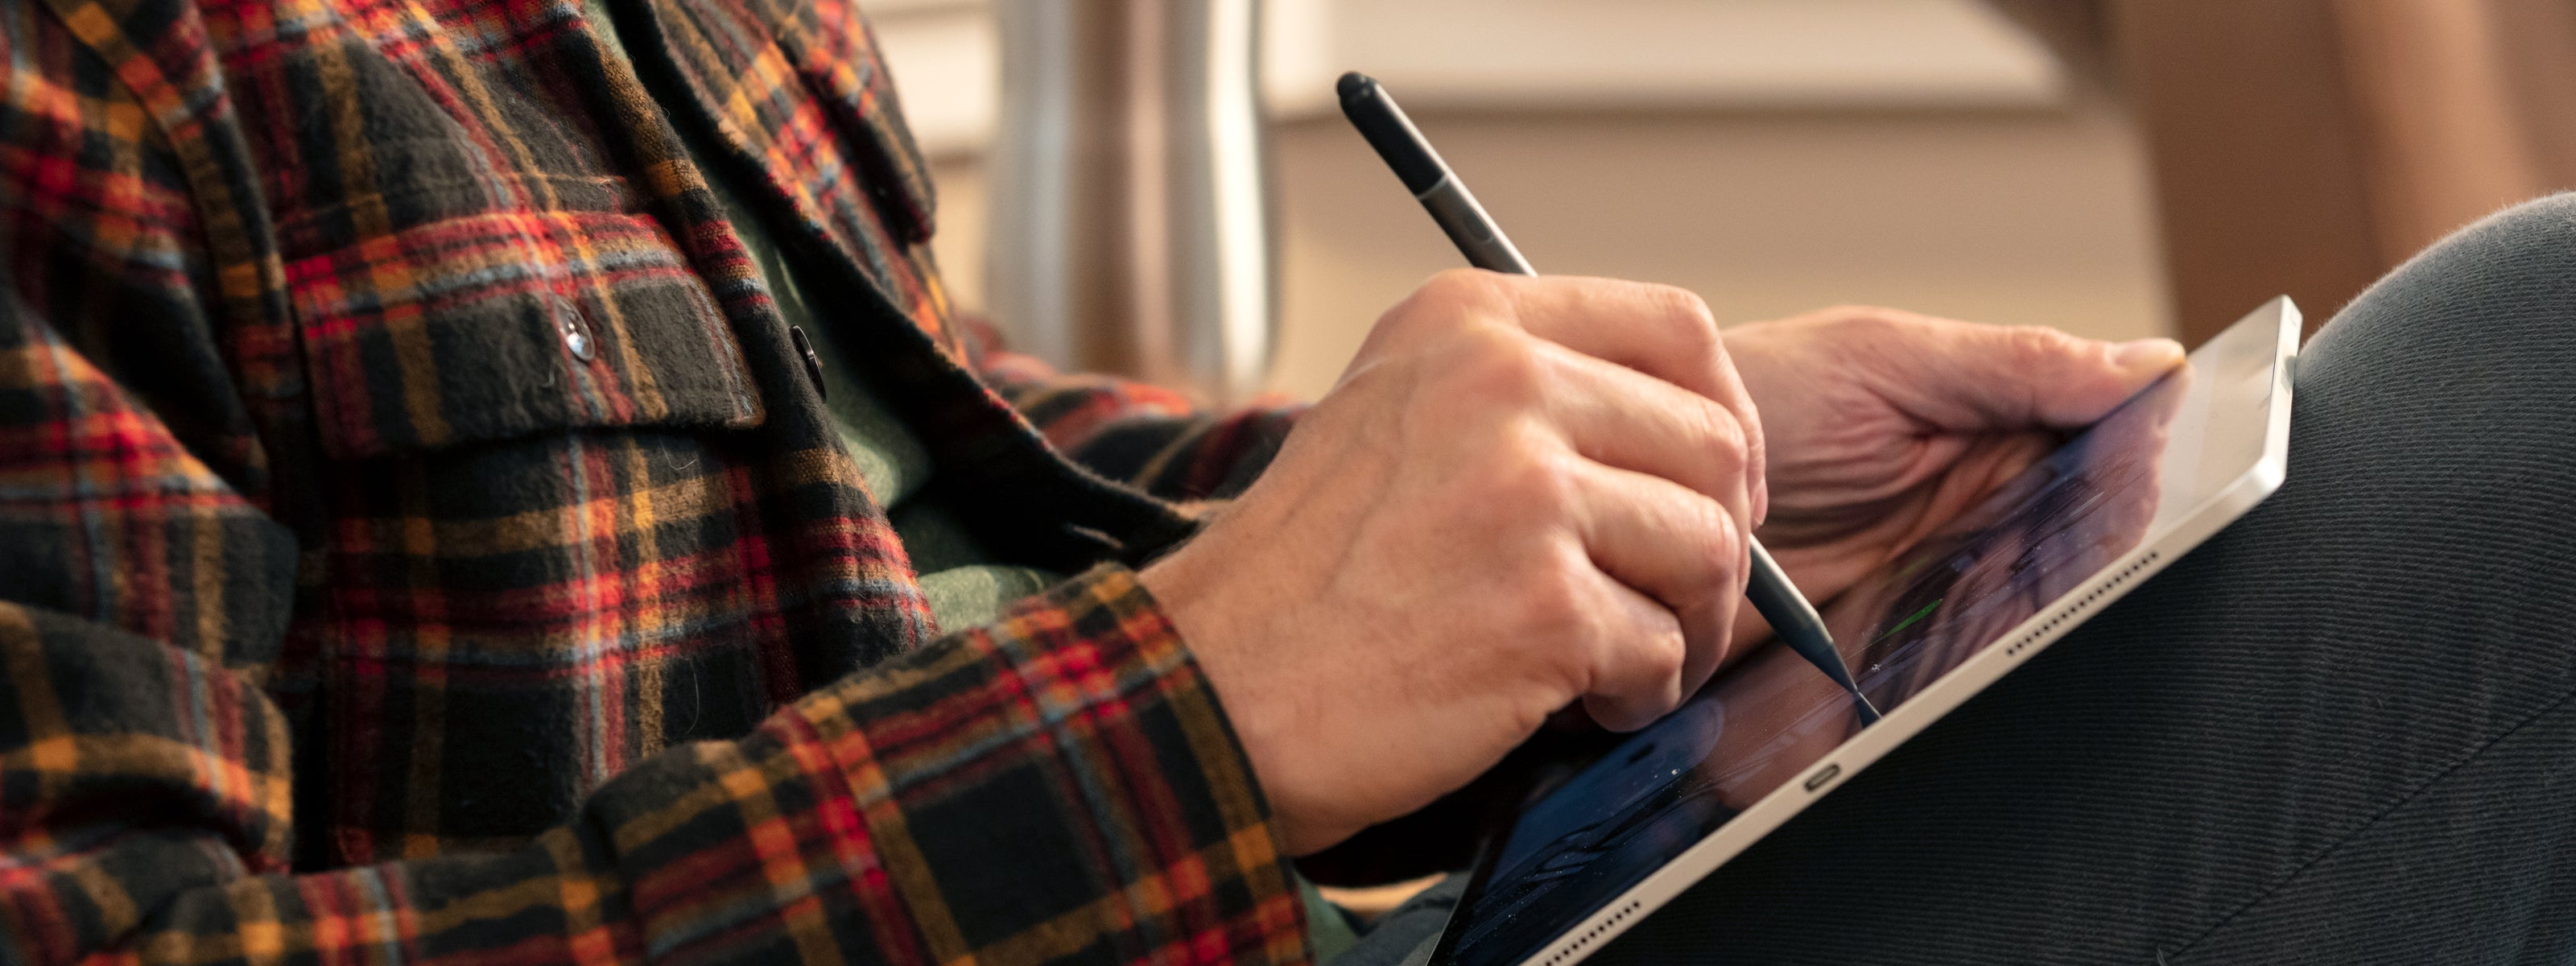 man using stylus on iPad